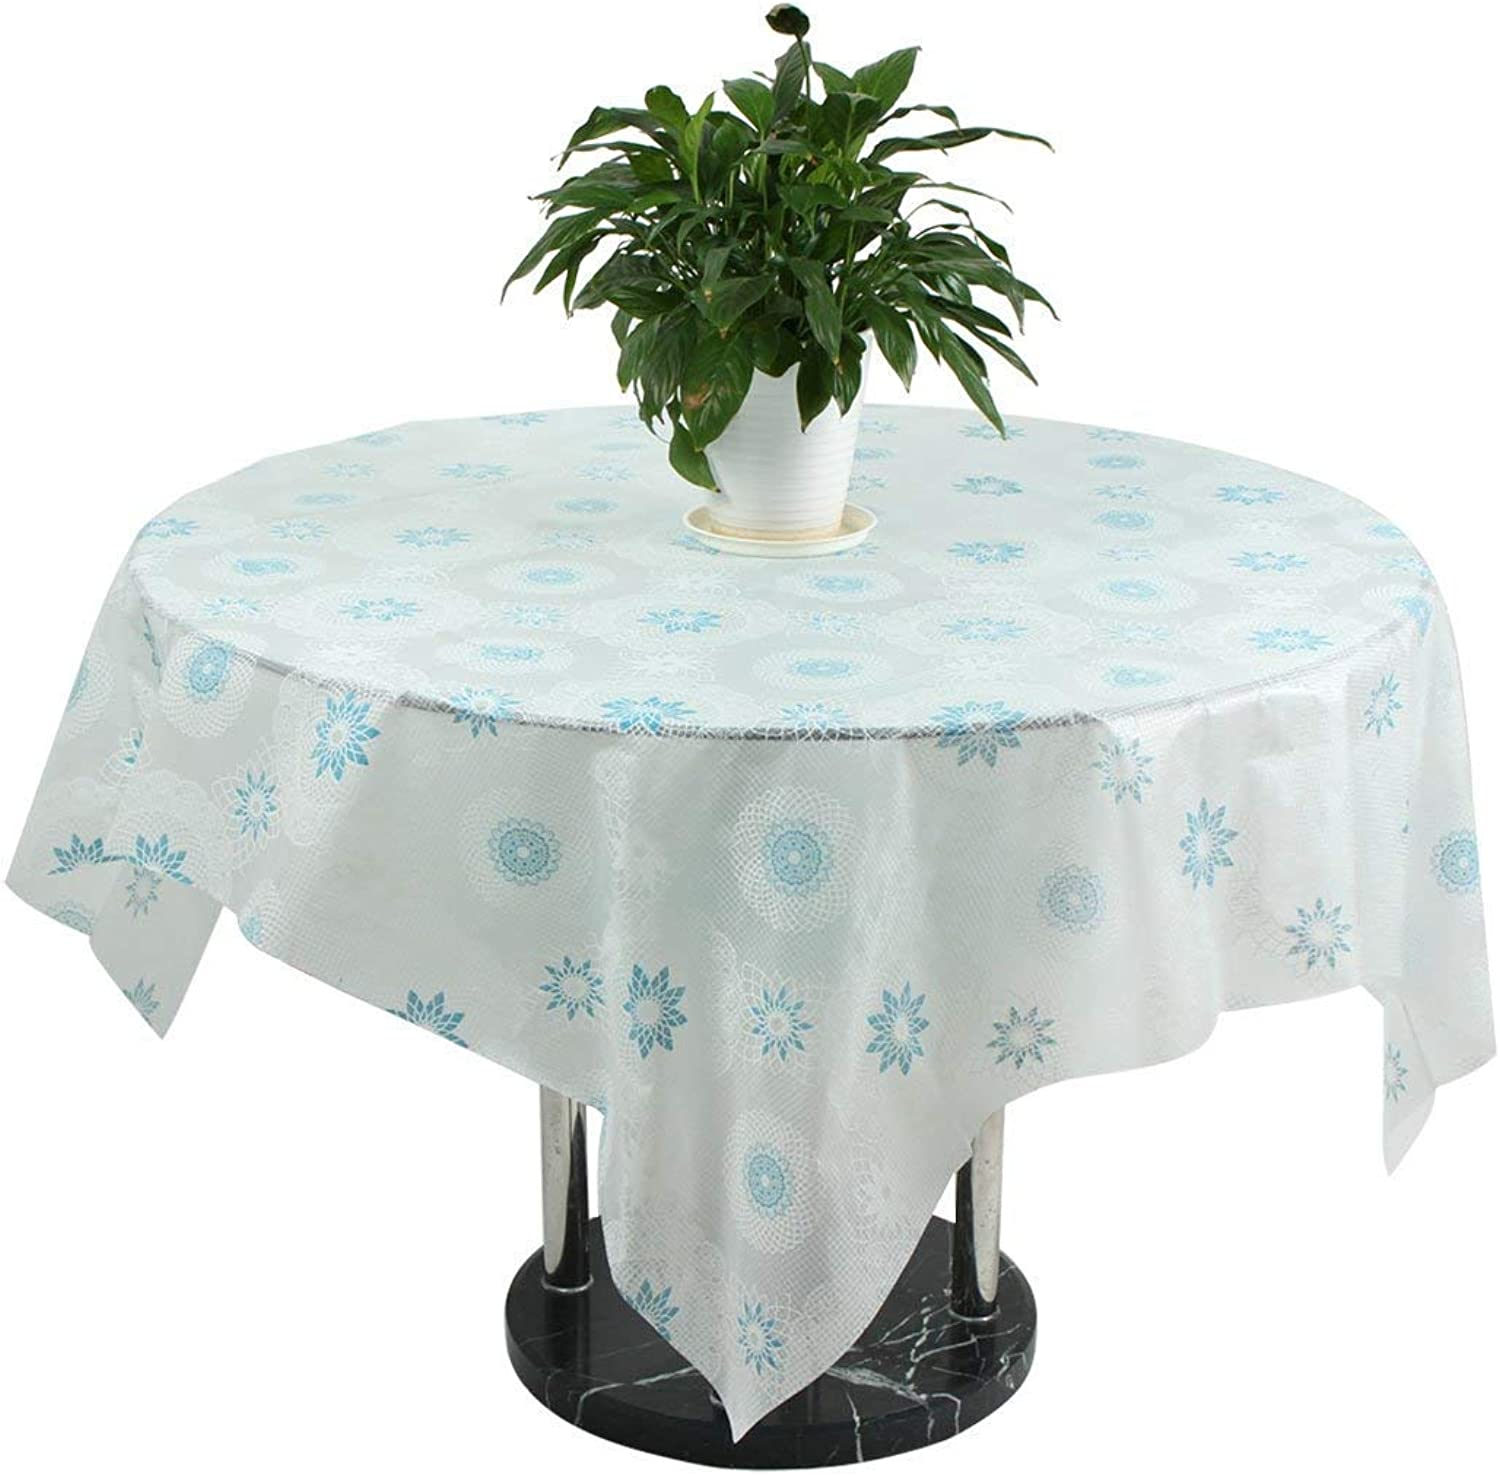 Floral Pattern PEVA Household Square Shape Cocktail Table Predector Tablecloth bluee